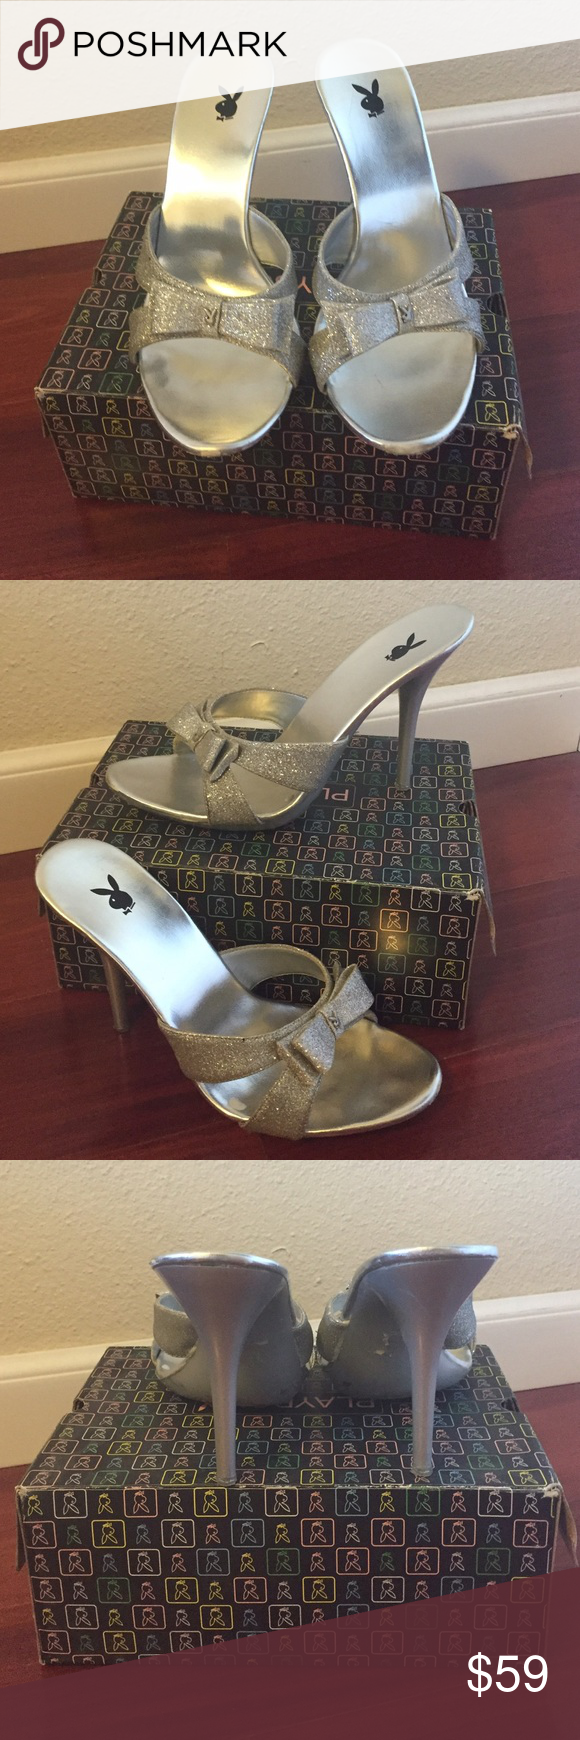 PLAYBOY Silver Glitter Bow High Slip-On Heels Silver glitter Playboy slide on heels. Bow detailing with tiny silver playboy bunny logo in the center. Preowned and worn plenty of times.  Size: 9 Style: Monroe. Color: Silver. PLAYBOY Shoes Heels